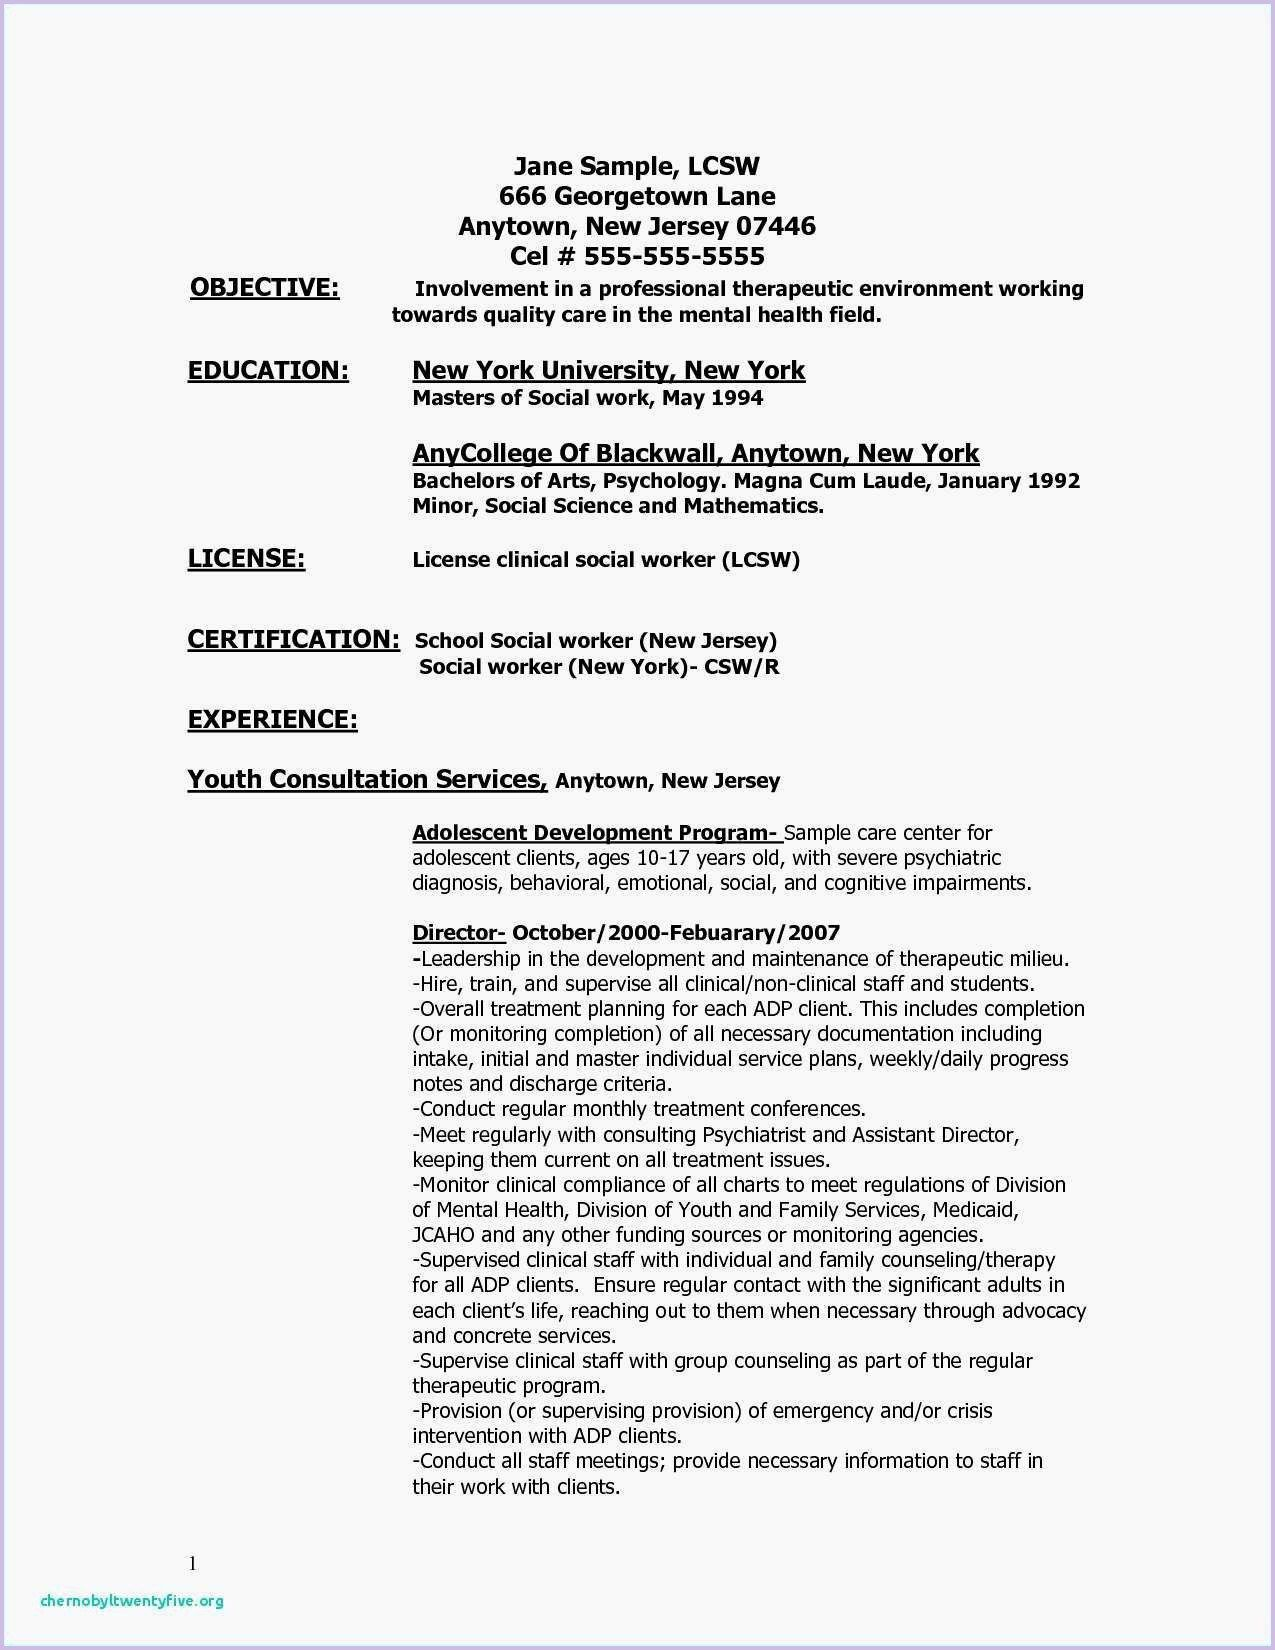 Undergraduate Resume Examples Paper Writing Service Writing Services Essay